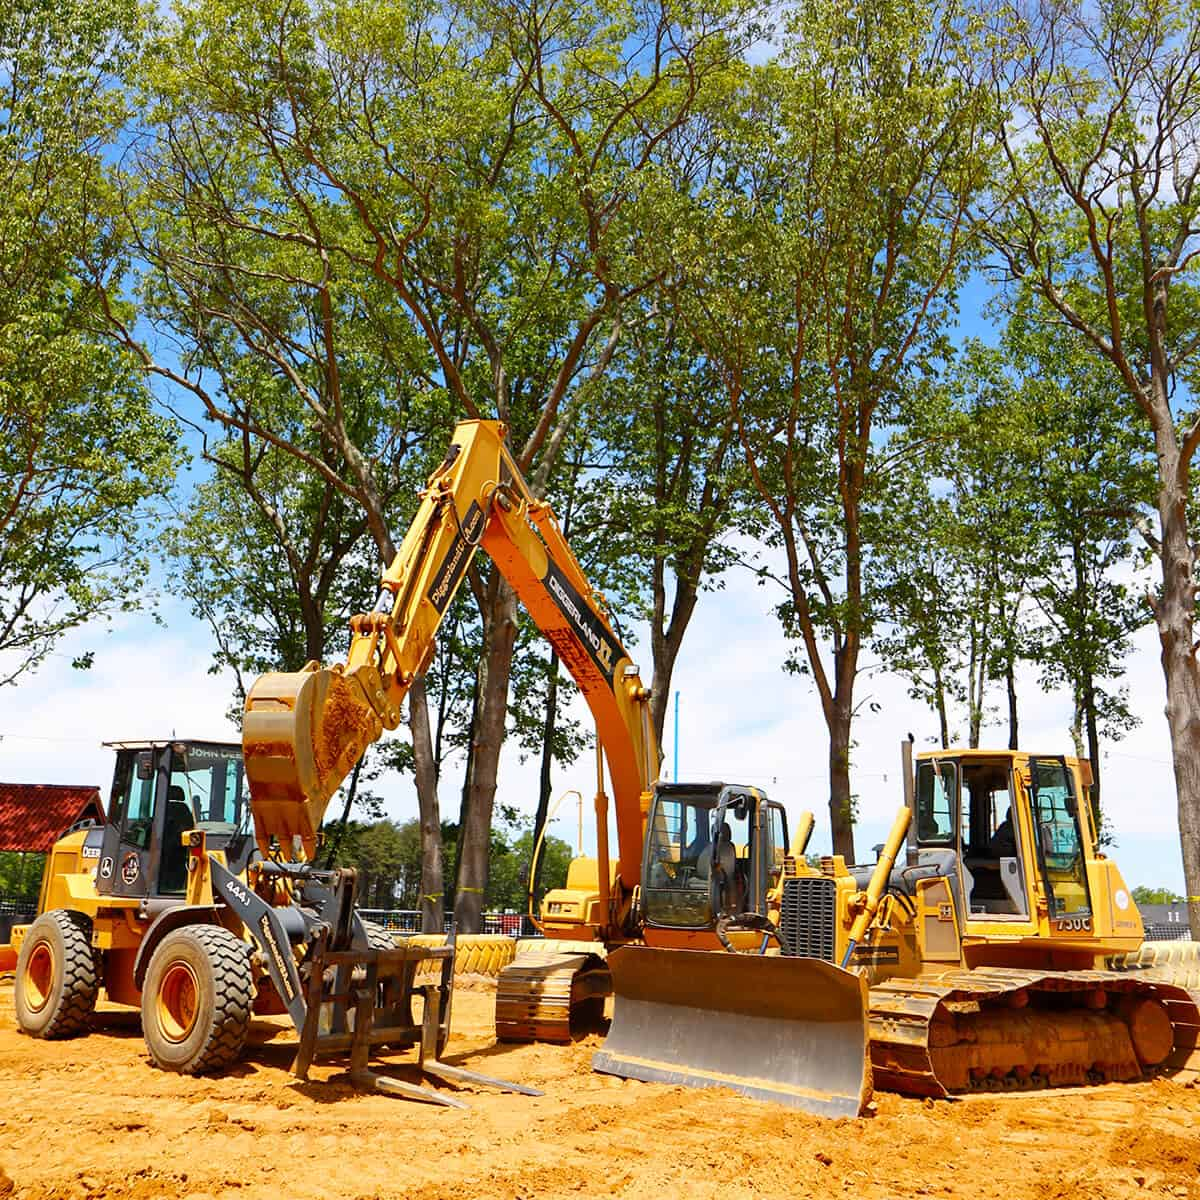 Wheel loader, excavator and bulldozer XL experience machines